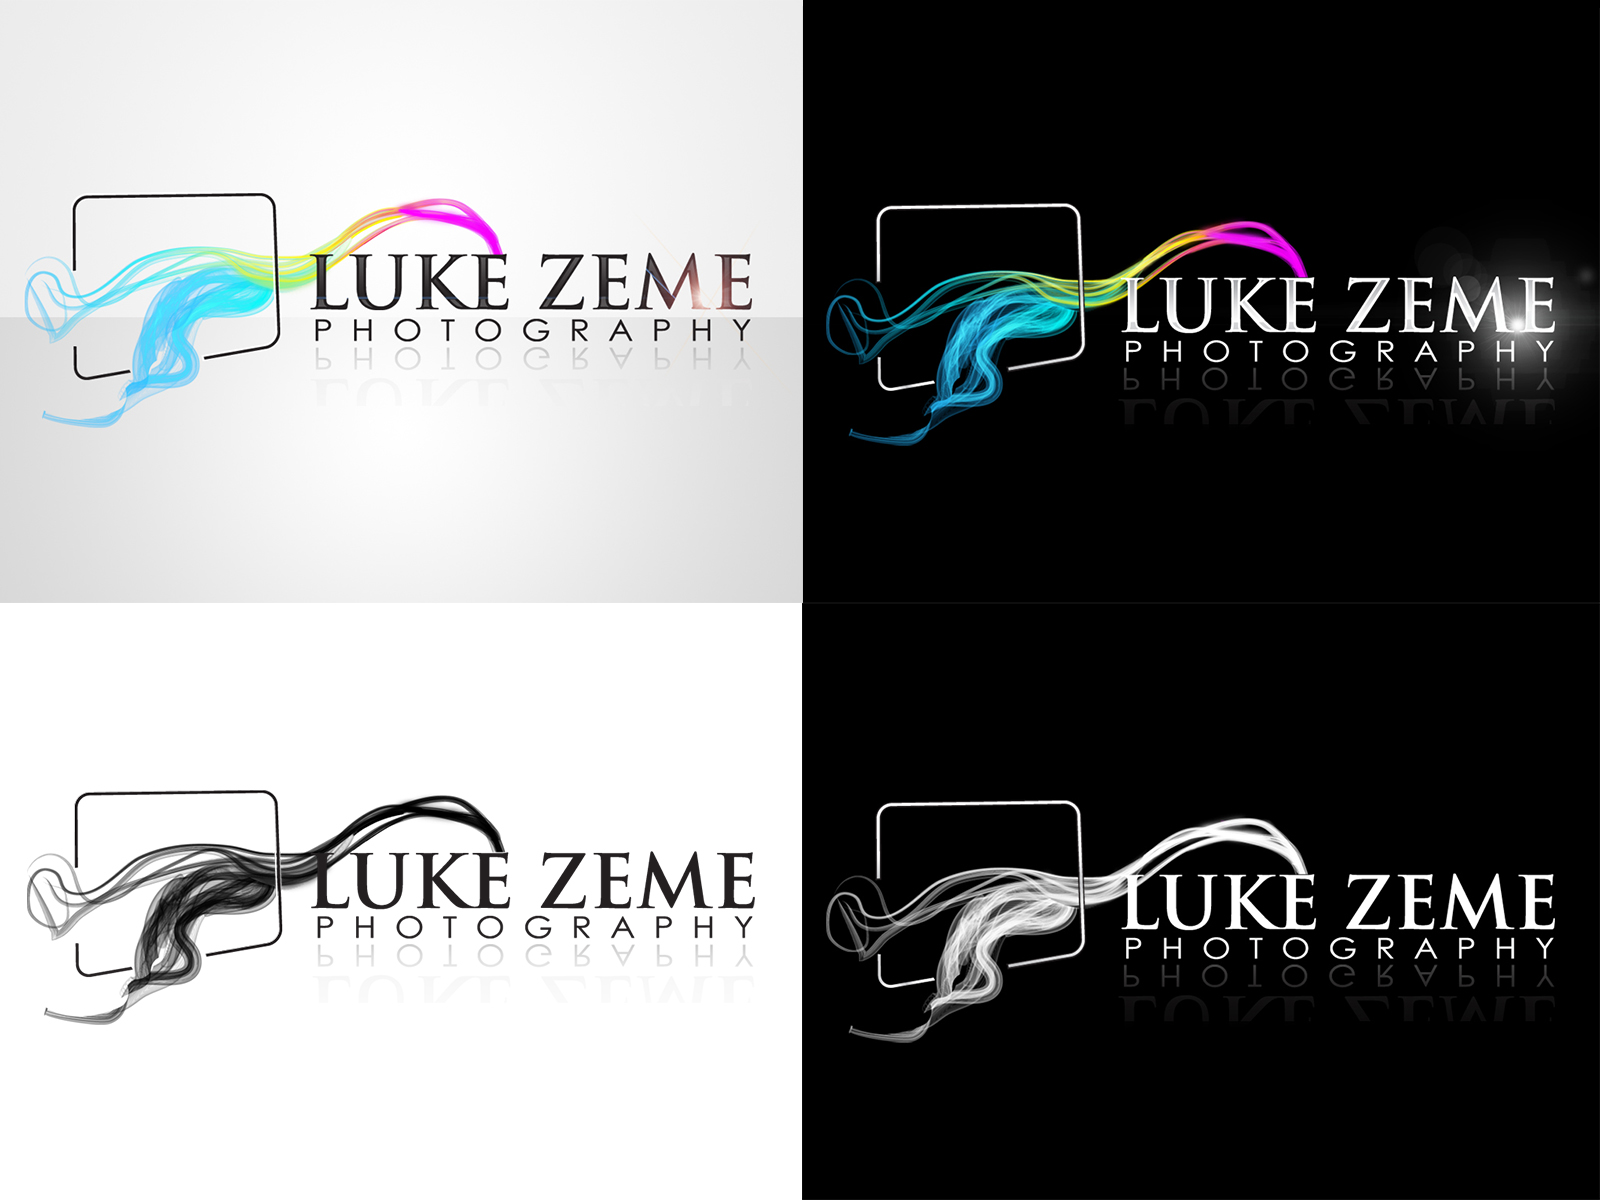 Luke Zeme Photography Logos Should you use a watermark or logo on your images ?